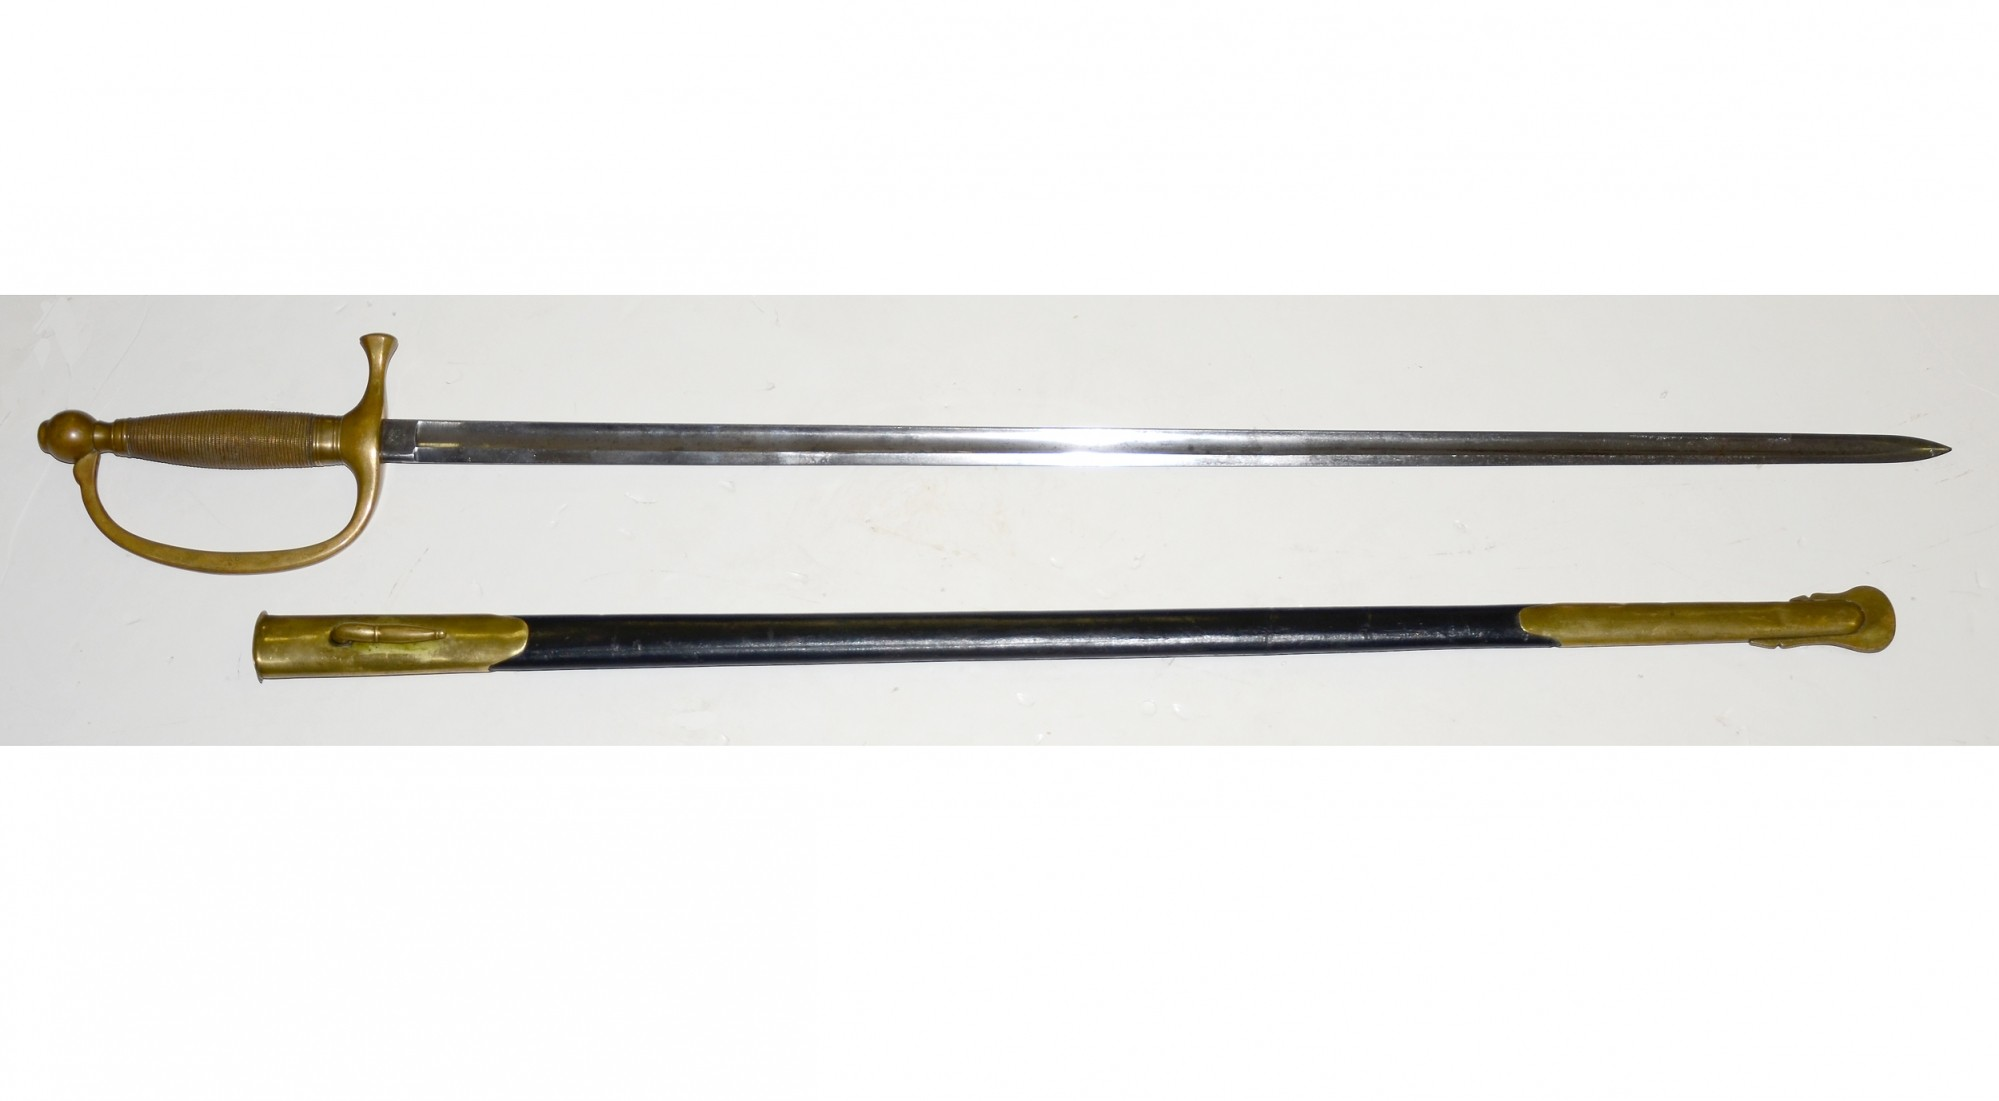 US MODEL 1840 MUSICIAN'S SWORD, AMES MFG  COMPANY, DATED